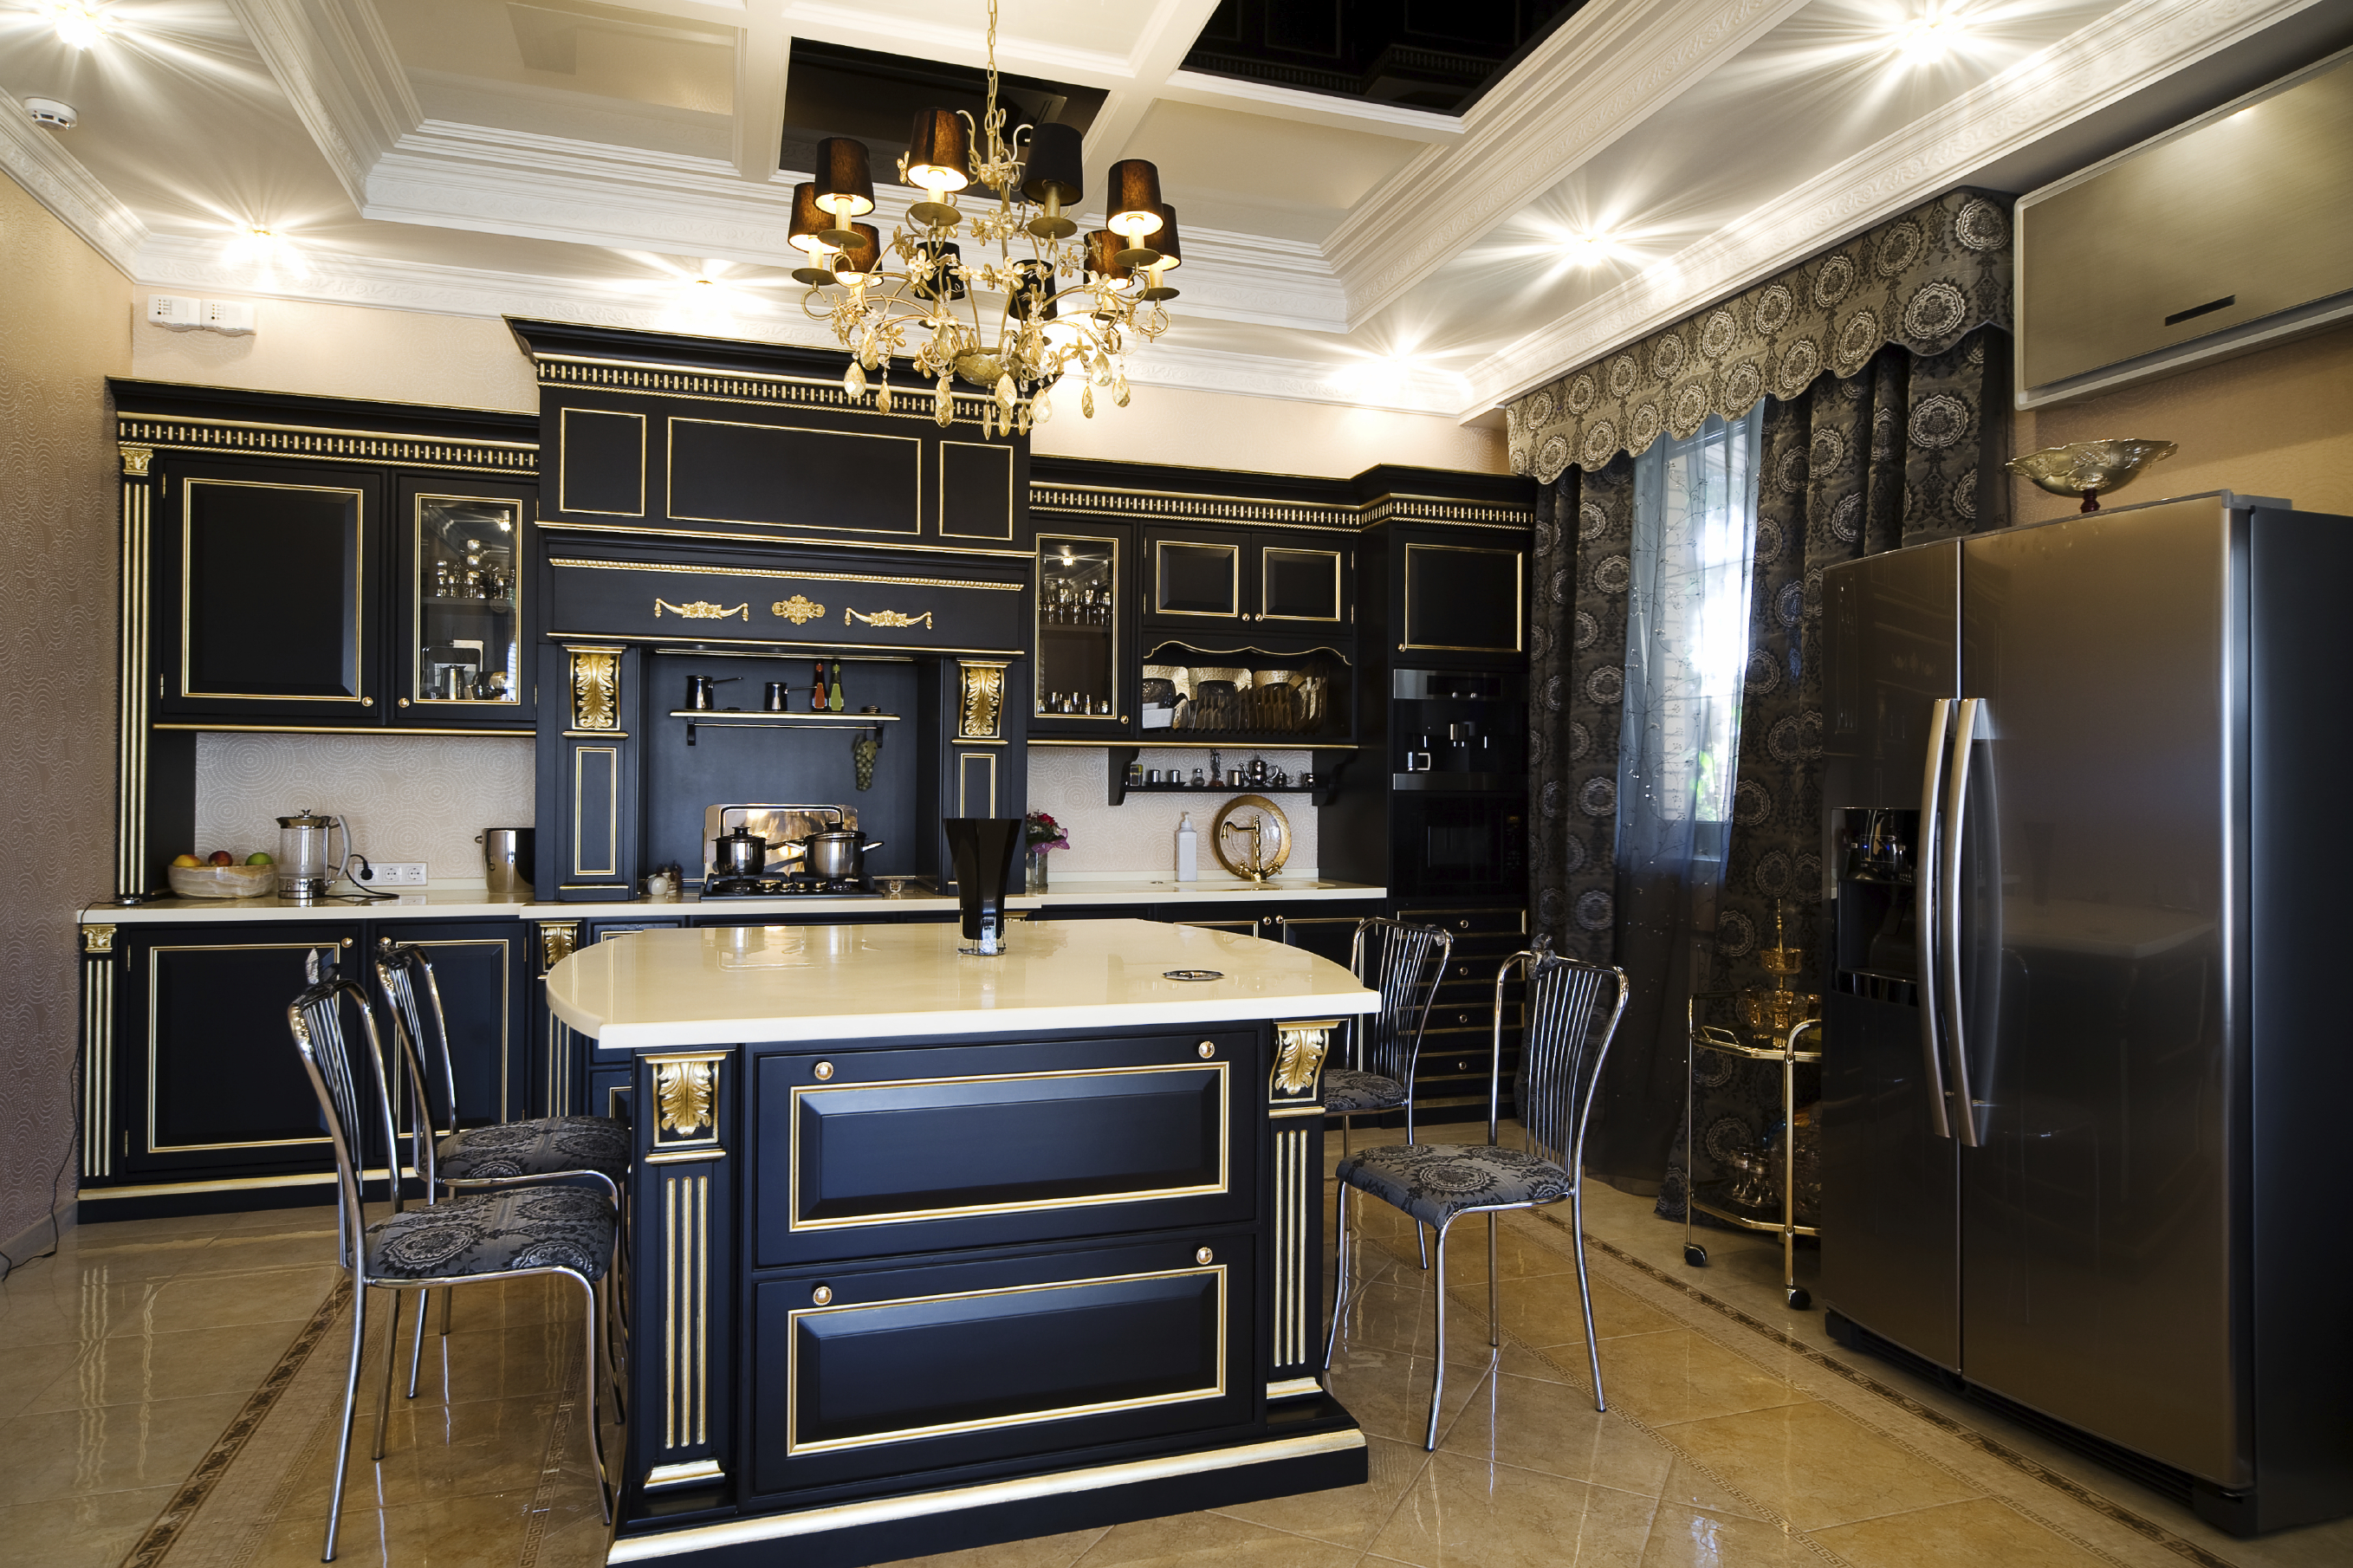 pictures of kitchens with white cabinets and dark floors will black kitchen cabinets soon replace white cabinets 993